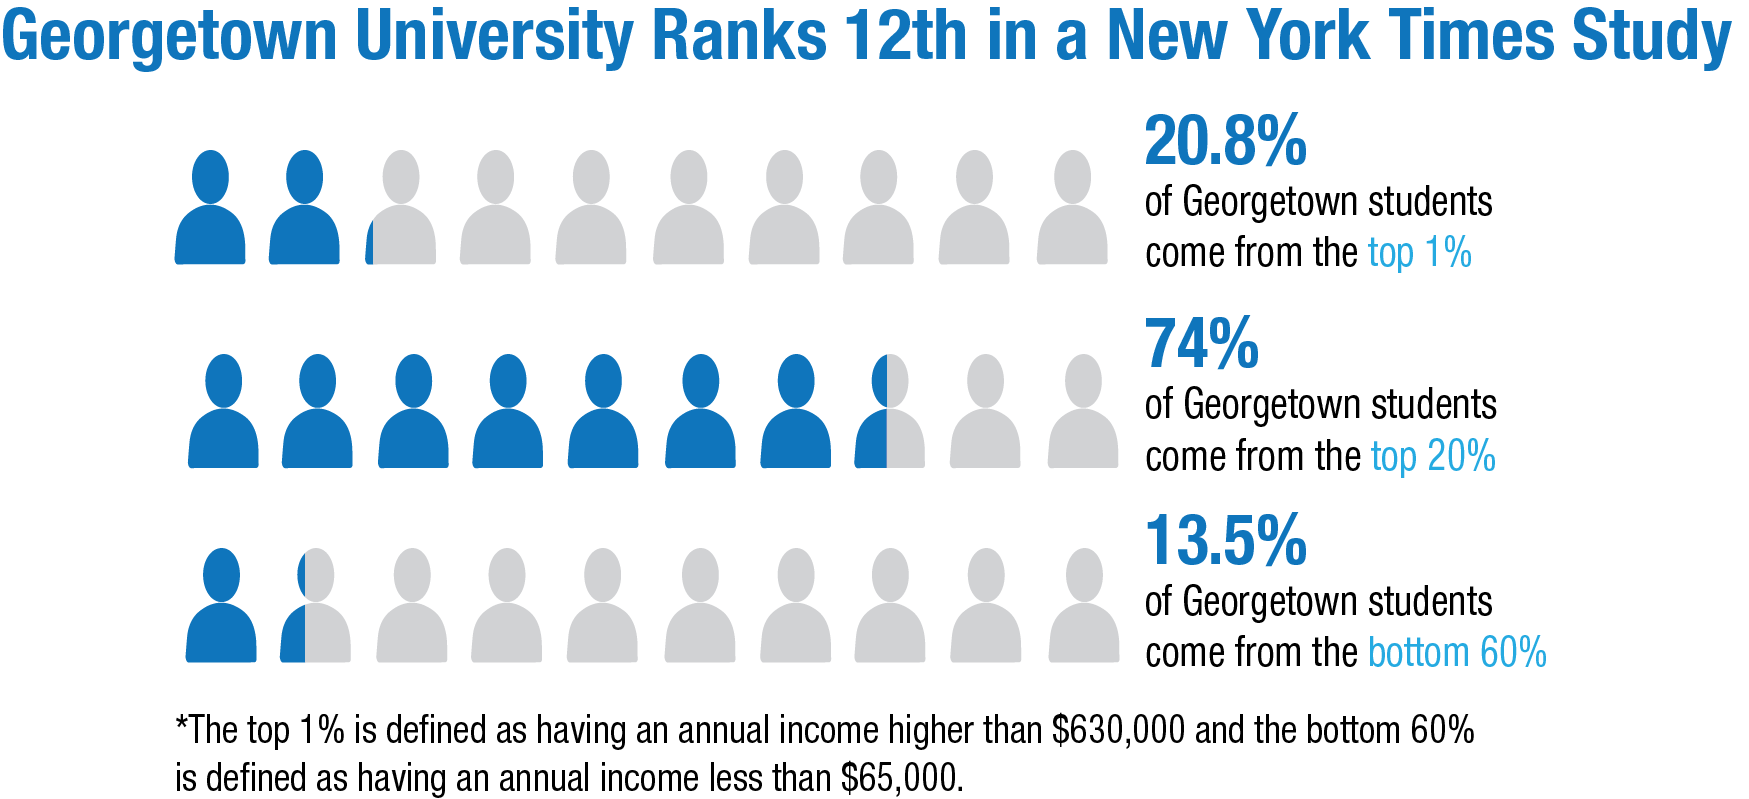 georgetown ranks 12th in study detailing income inequality